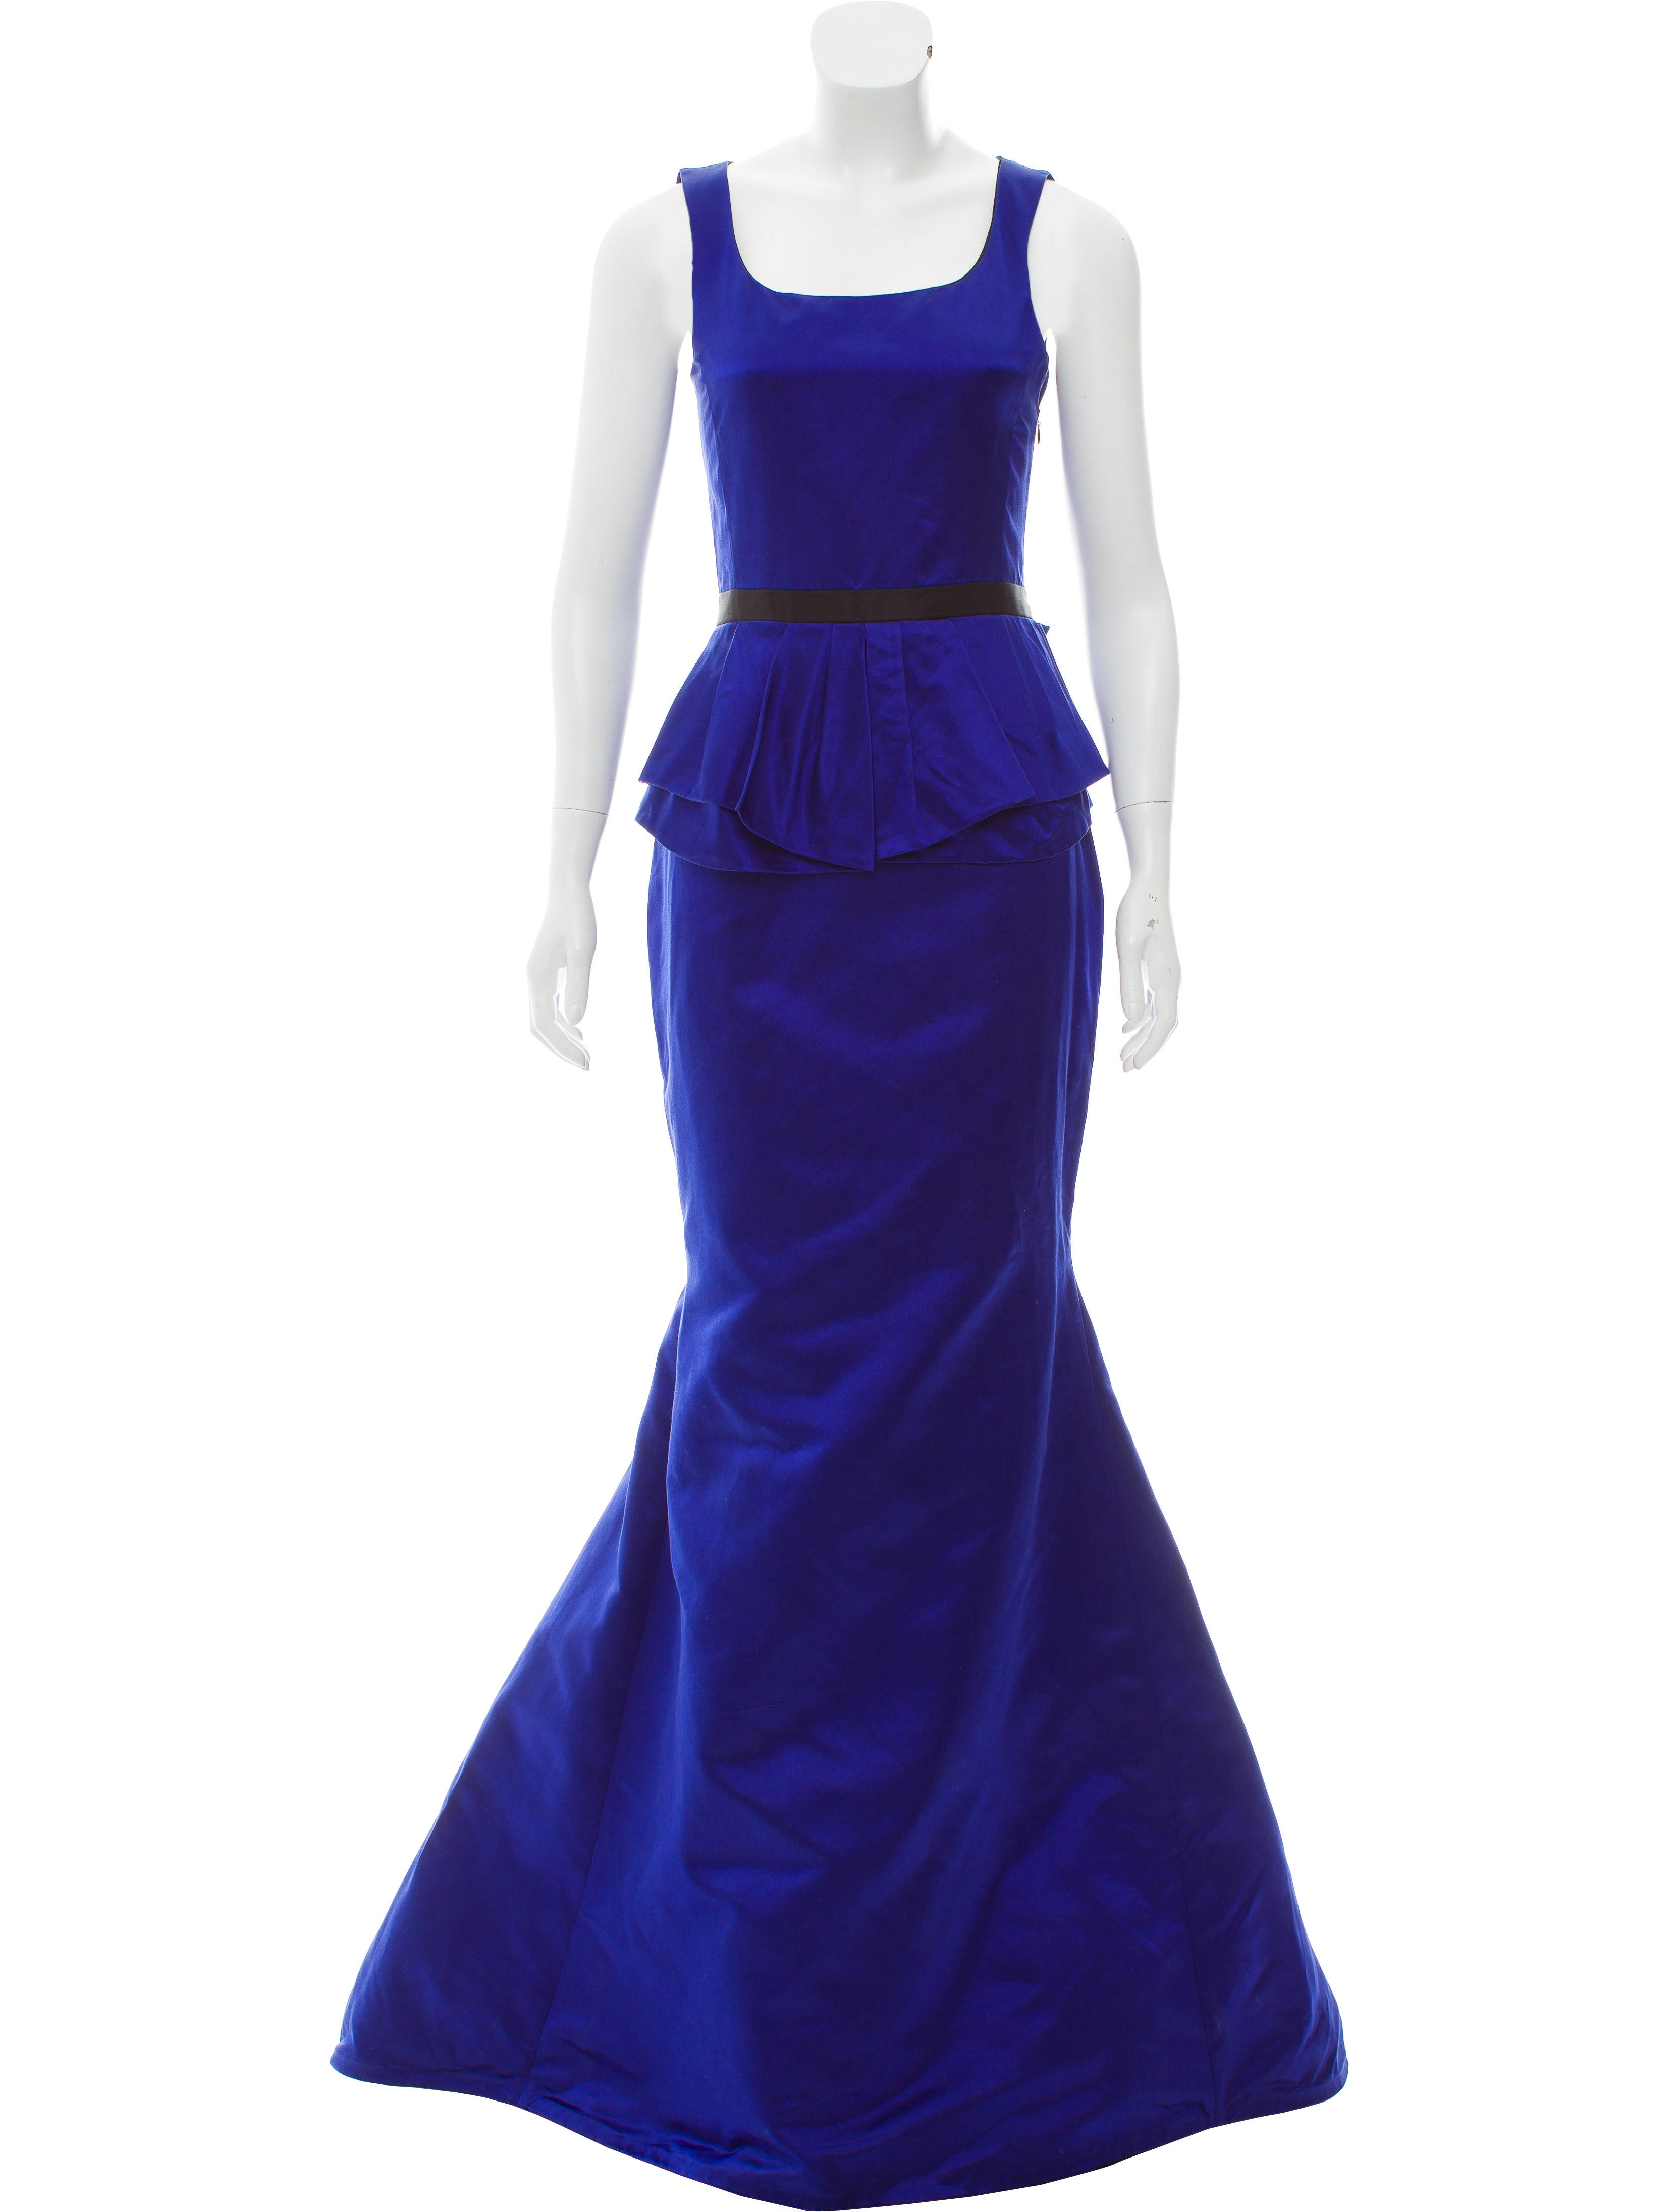 Jason Wu Sleeveless Evening Gown - Dresses - JAS24827 | The RealReal